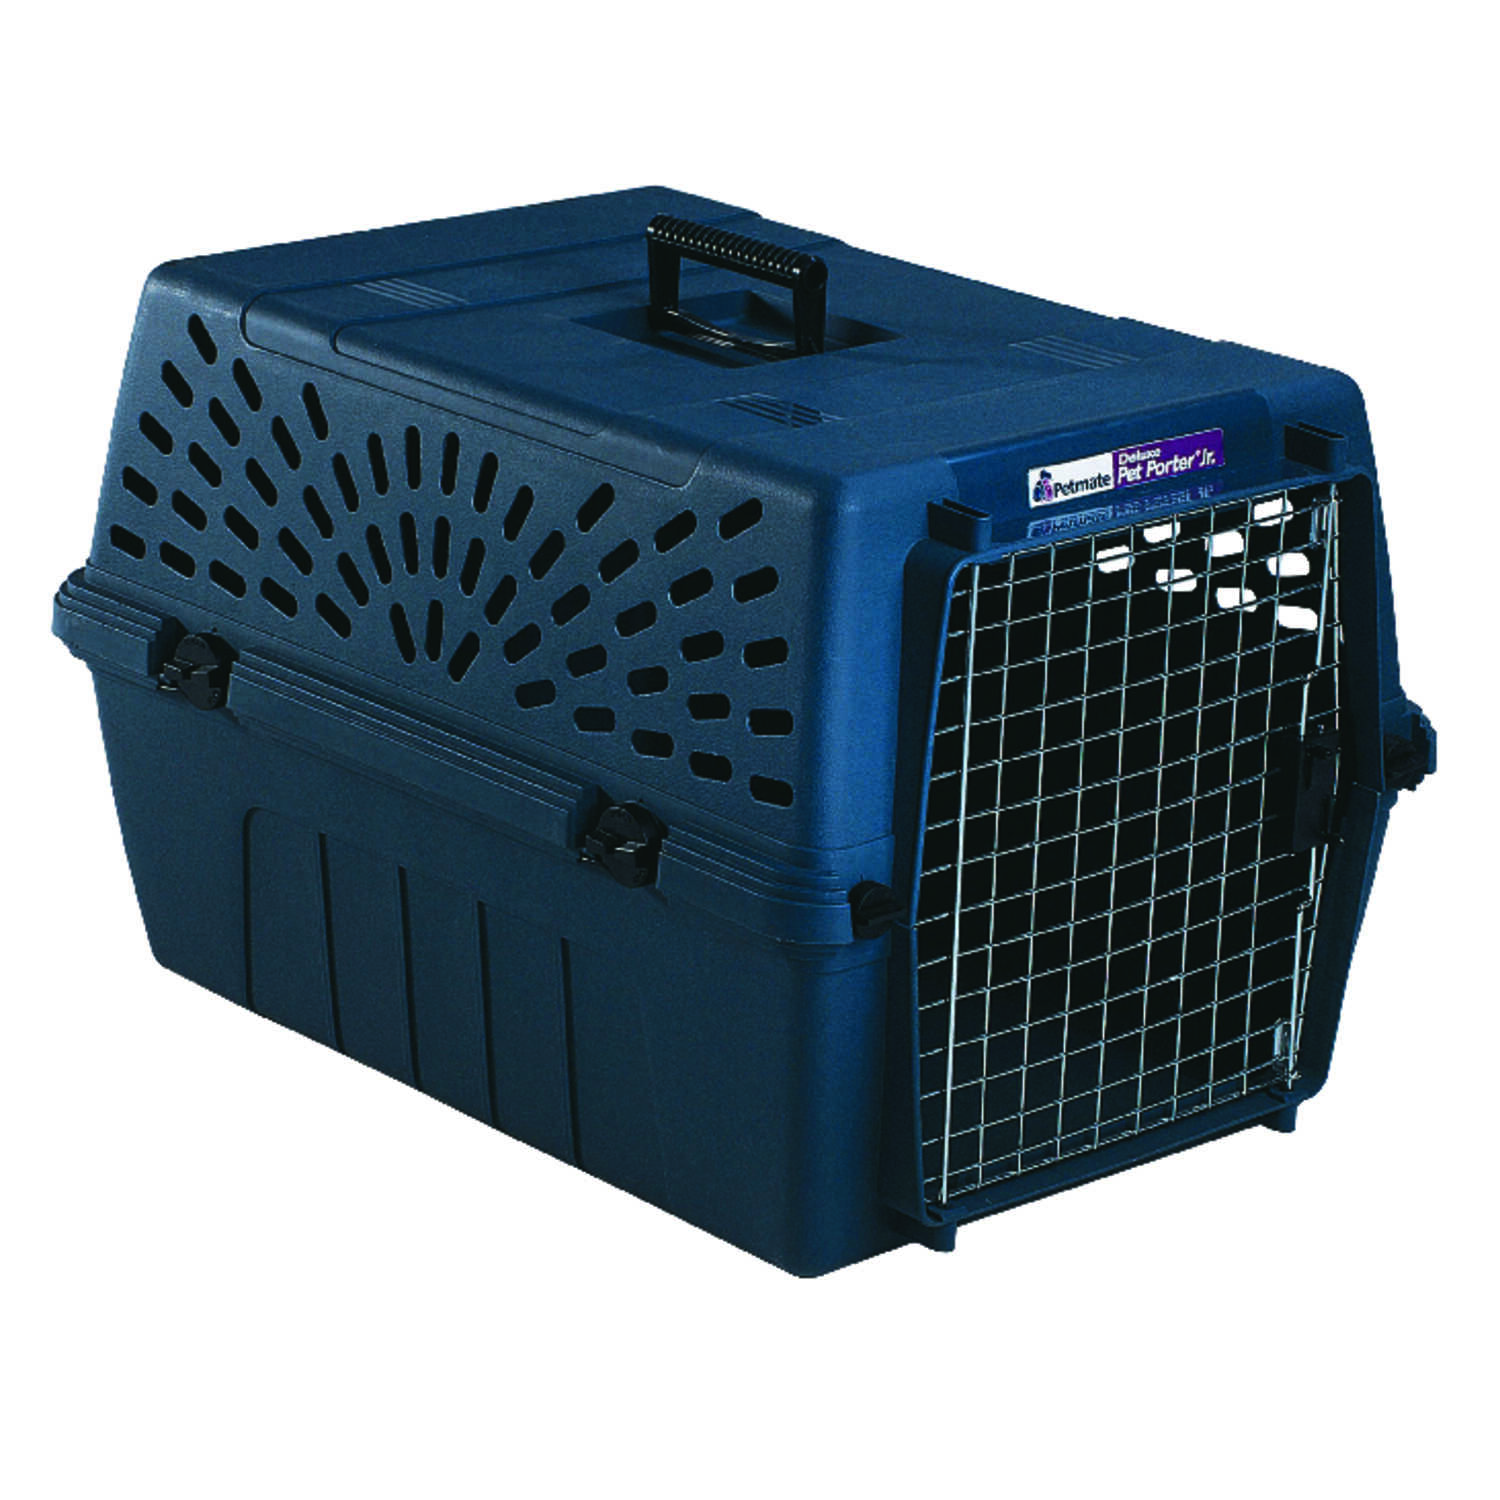 Petmate  Plastic  Pet Kennel  14-13/16 in. H